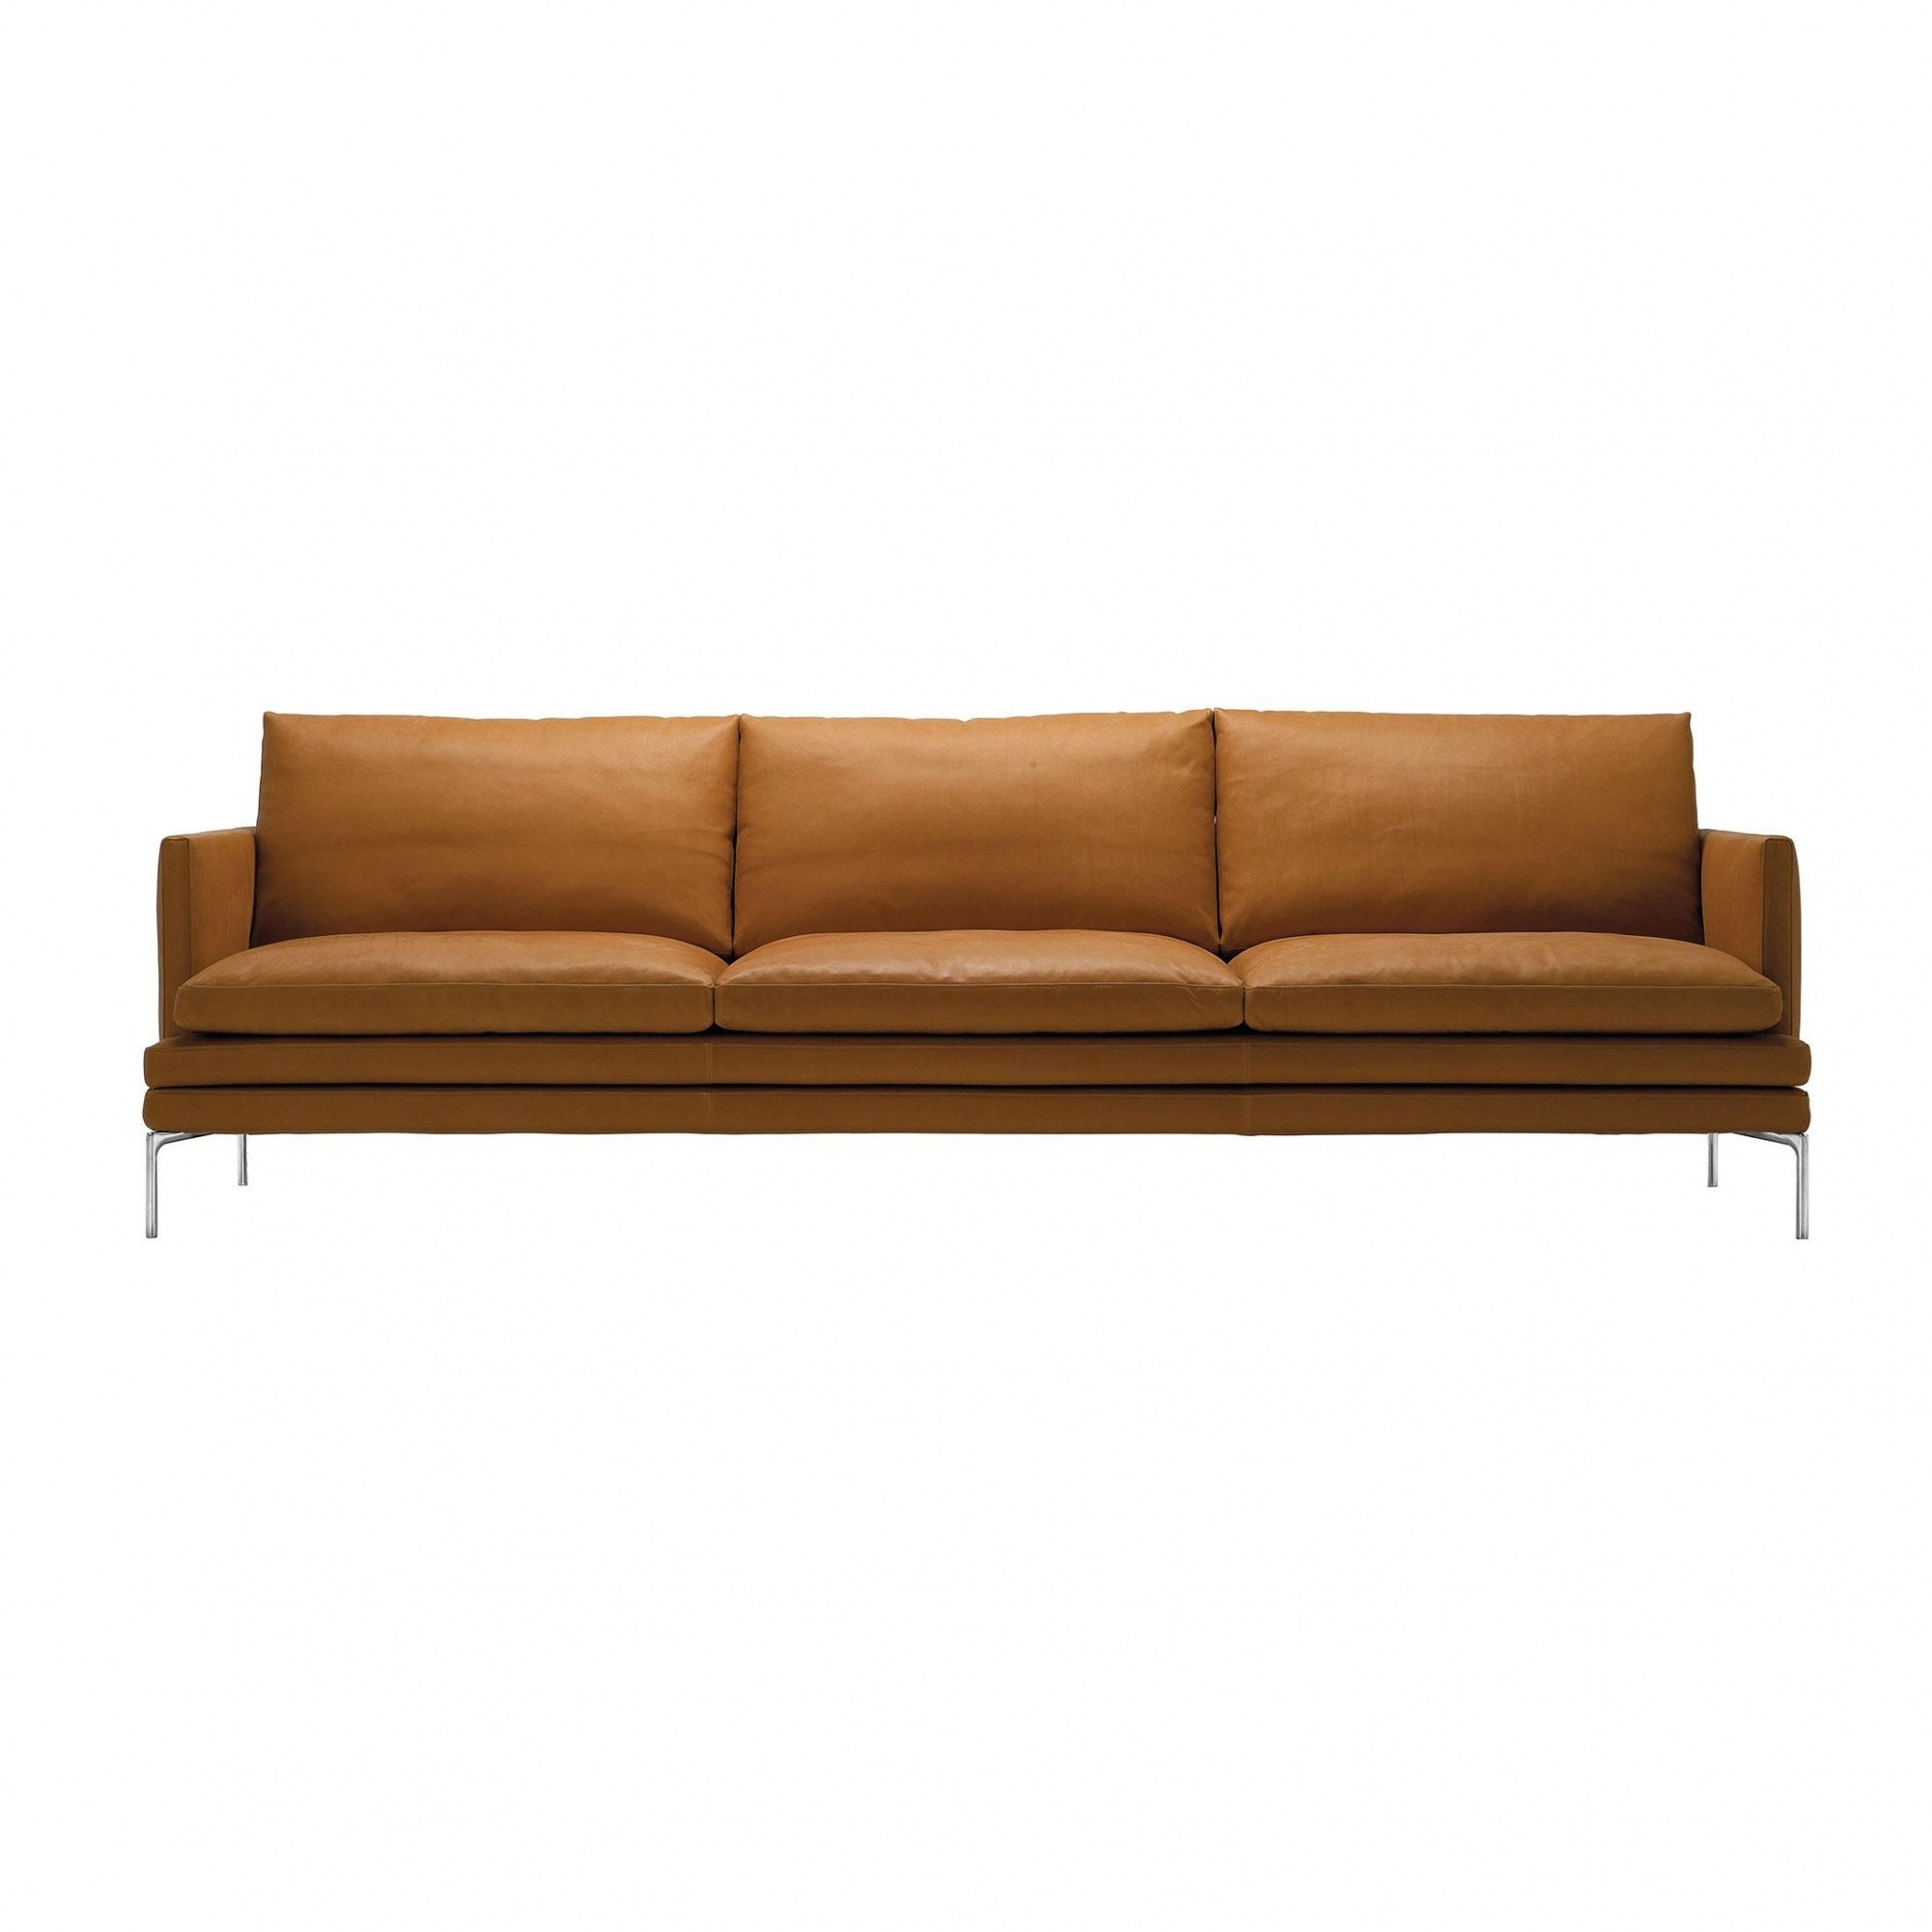 Zanotta William 3 Seater Sofa 226x87x90cm Cognac Leather Naturale Extra